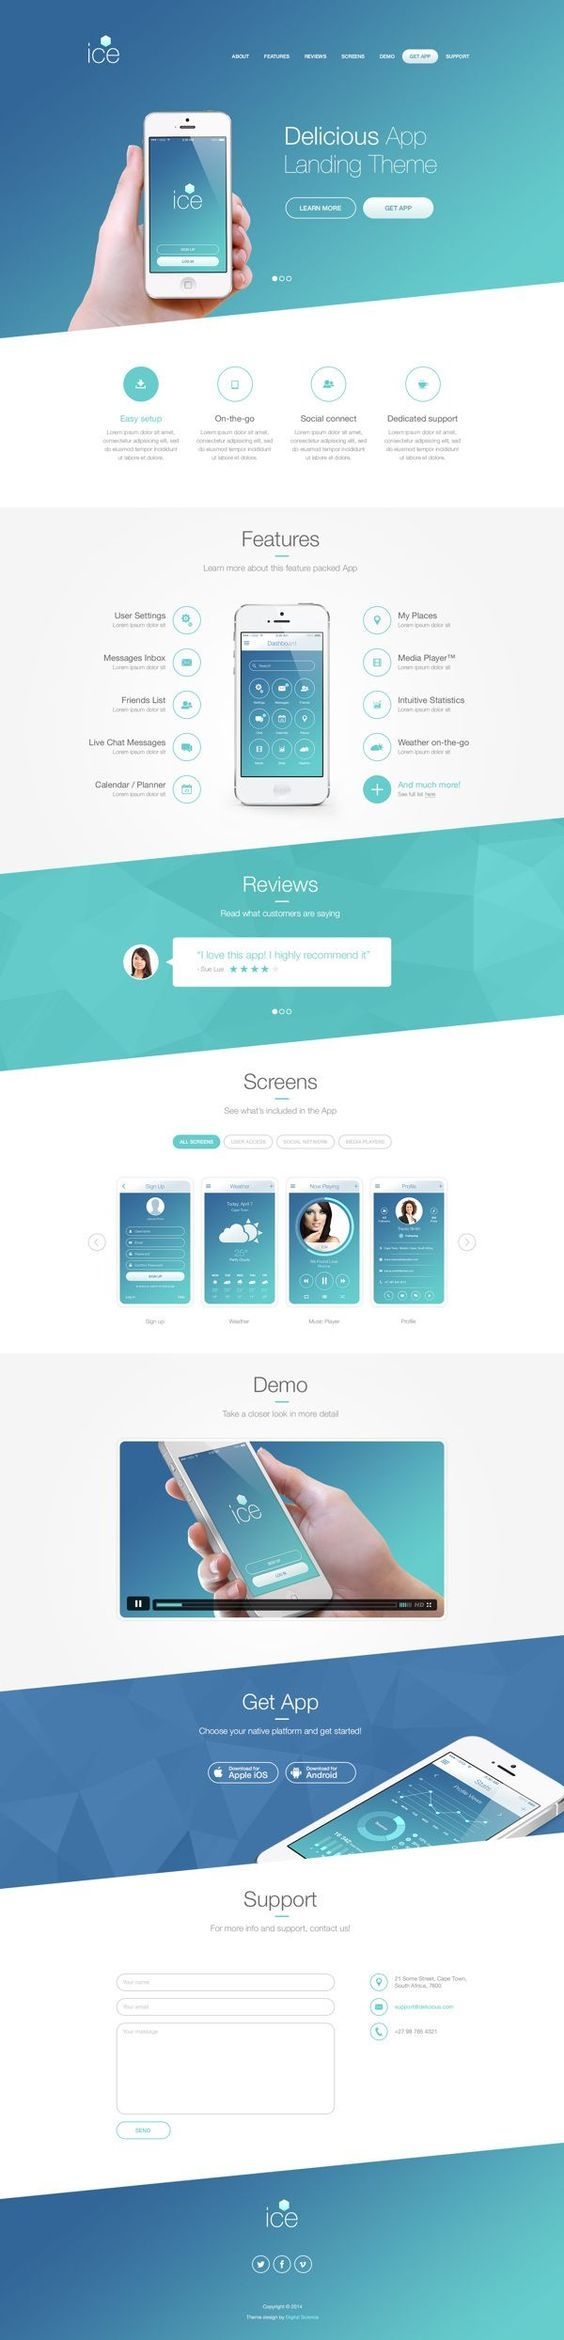 Strong diagonal flow down the page through background imagery. Landing page theme by Pierre Marais, via Behance.: